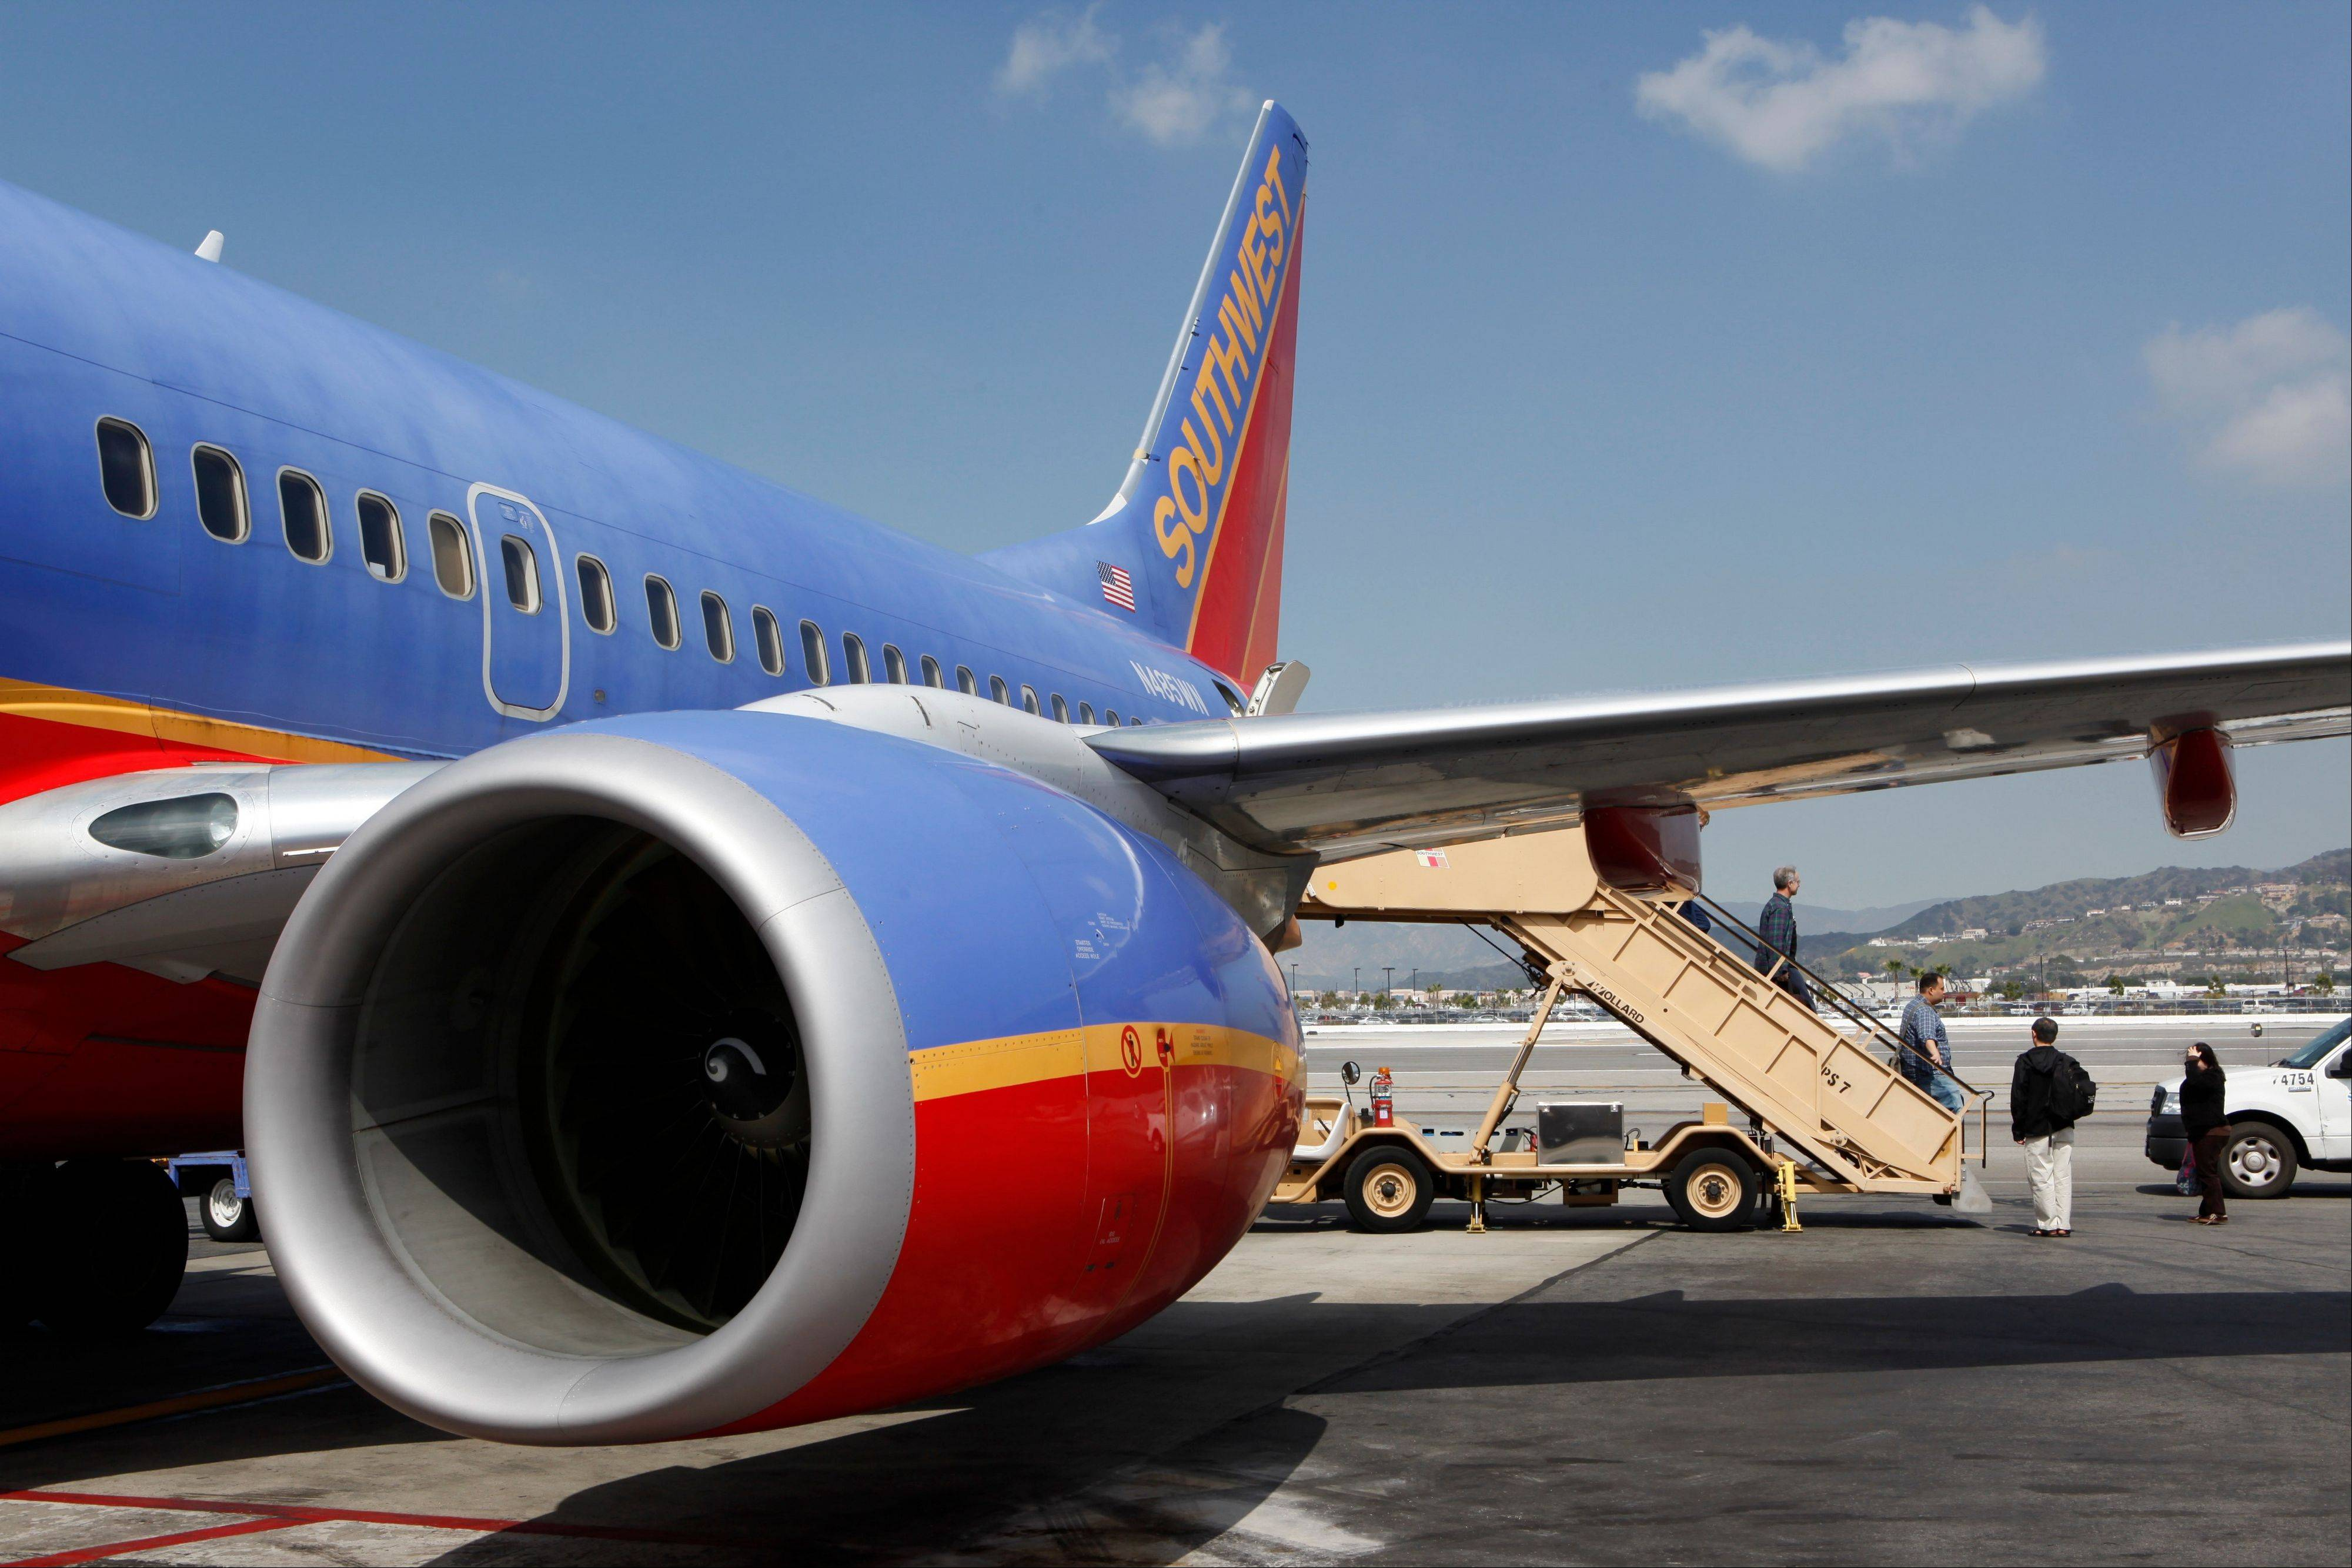 A Southwest Airlines plane in Burbank, Calif.